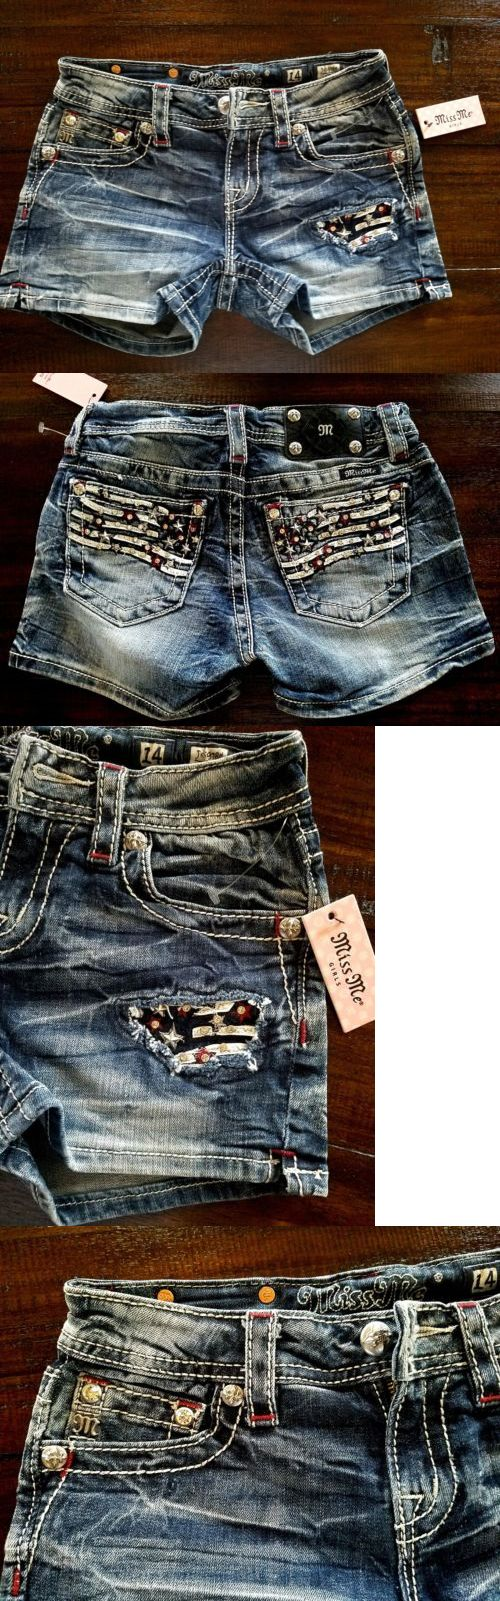 Shorts 15648: Nwt Girl S Miss Me Jeans American Flag Shorts Size 14 -> BUY IT NOW ONLY: $39.5 on eBay!